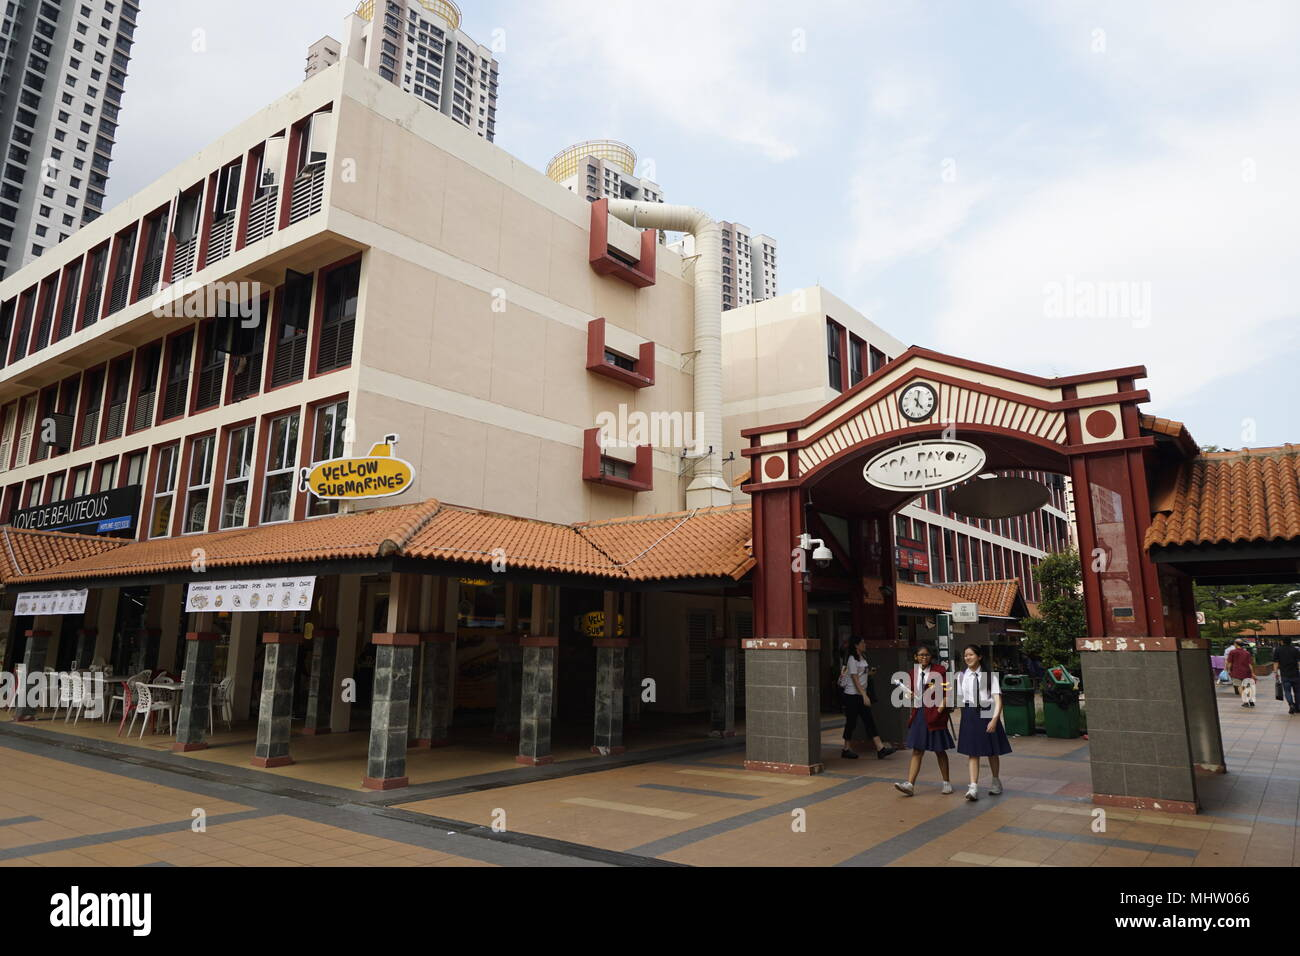 Toa Payoh mall, Singapore. Shophouses located within a matured residential area. - Stock Image